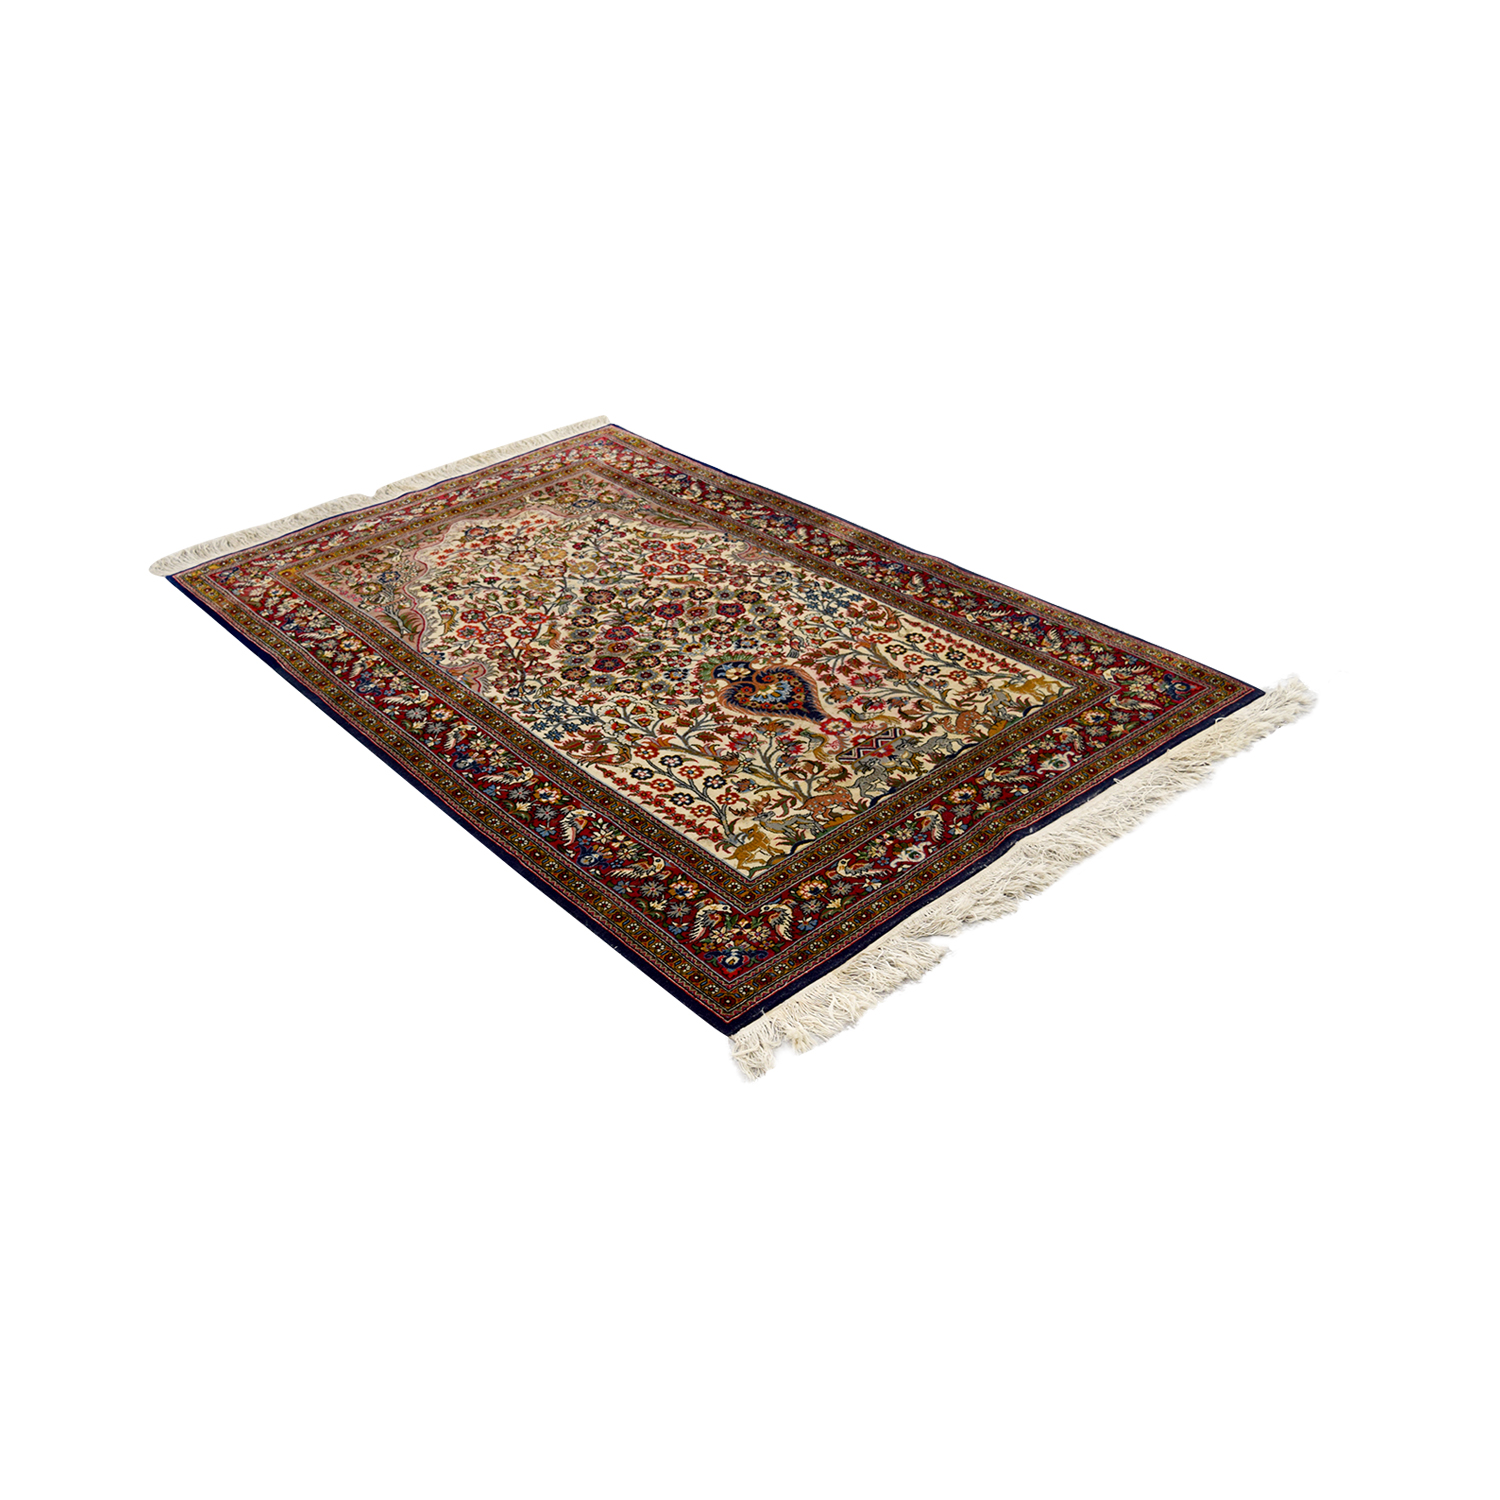 ABC Carpet and Home ABC Carpet & Home Persian Red Rug